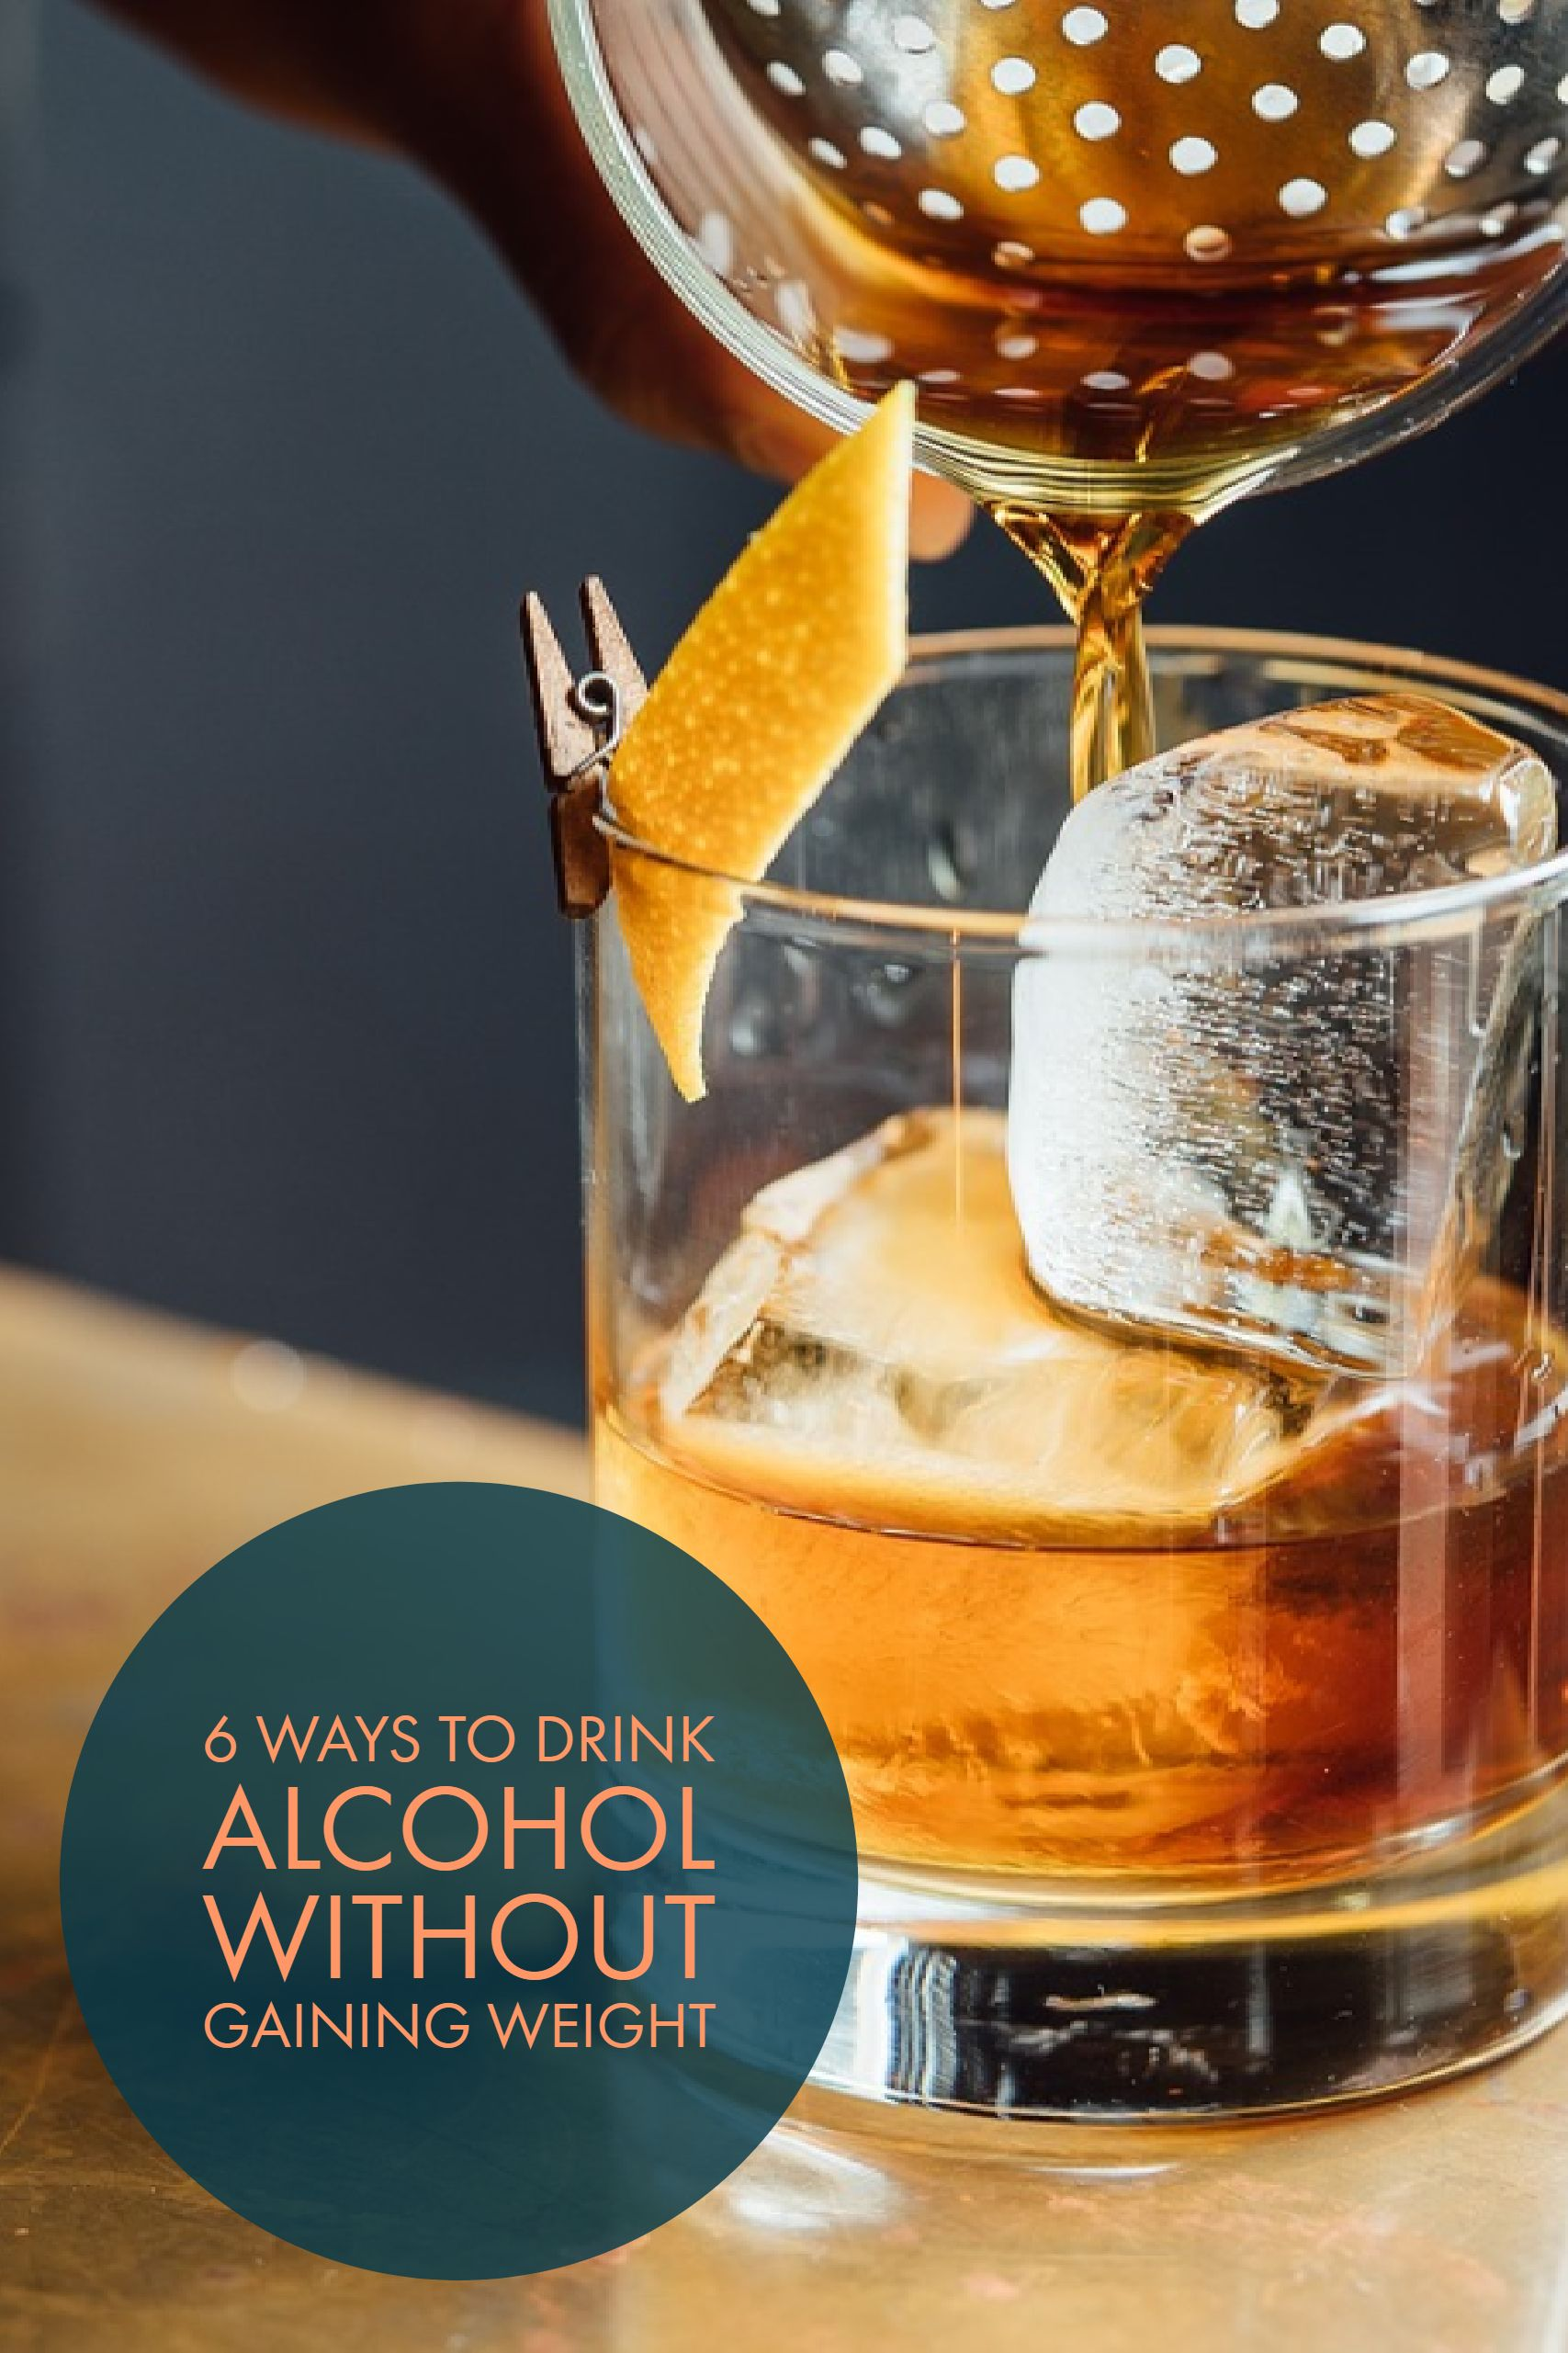 6 Guilt-Free Ways to Booze Without the Beer Gut